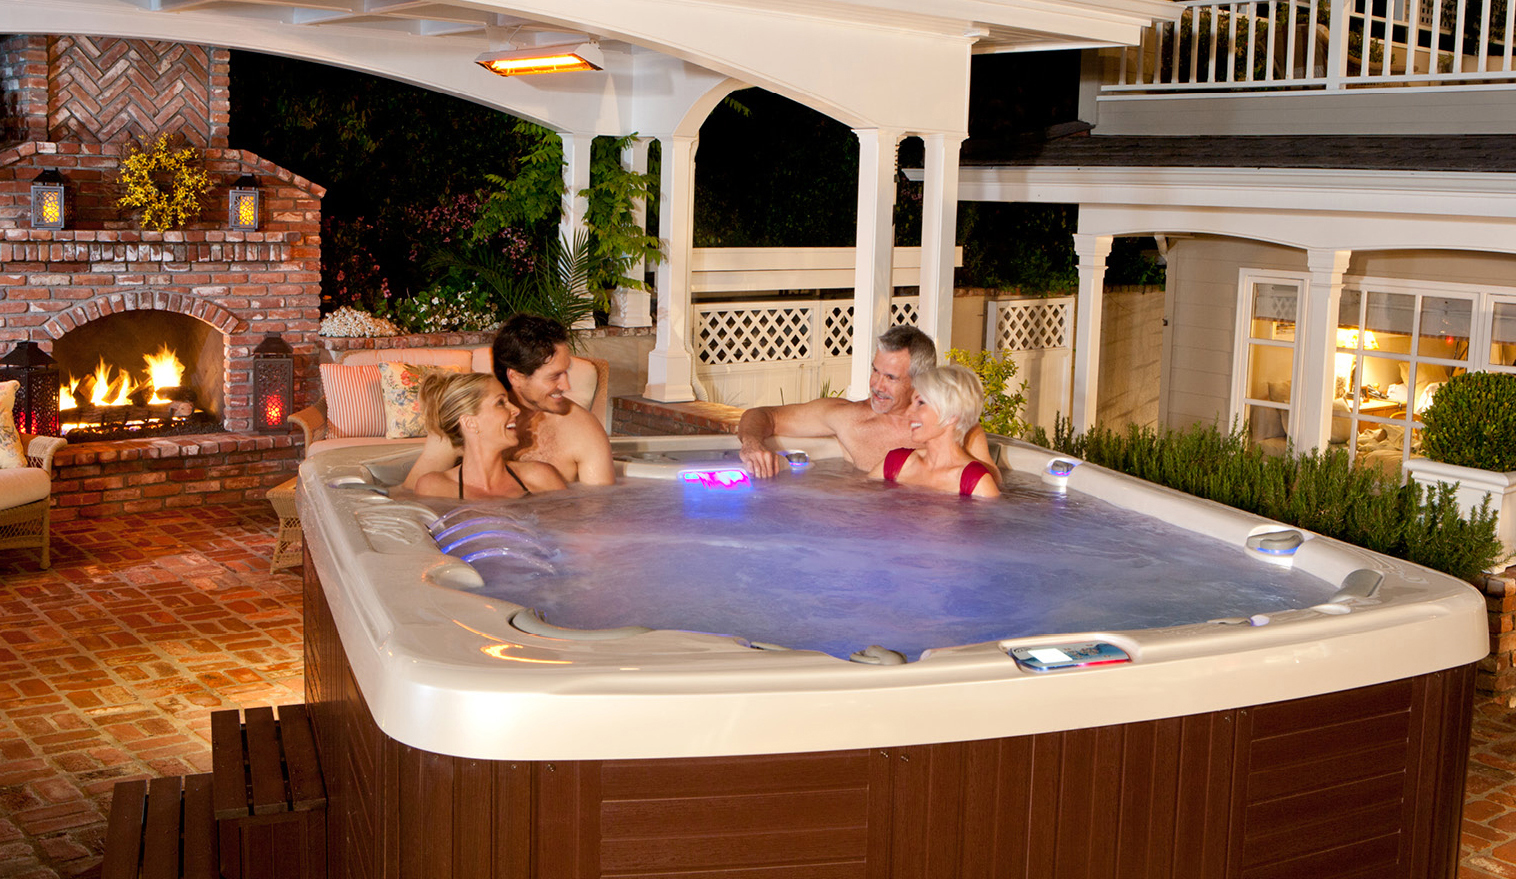 two couples in hot tub.jpg